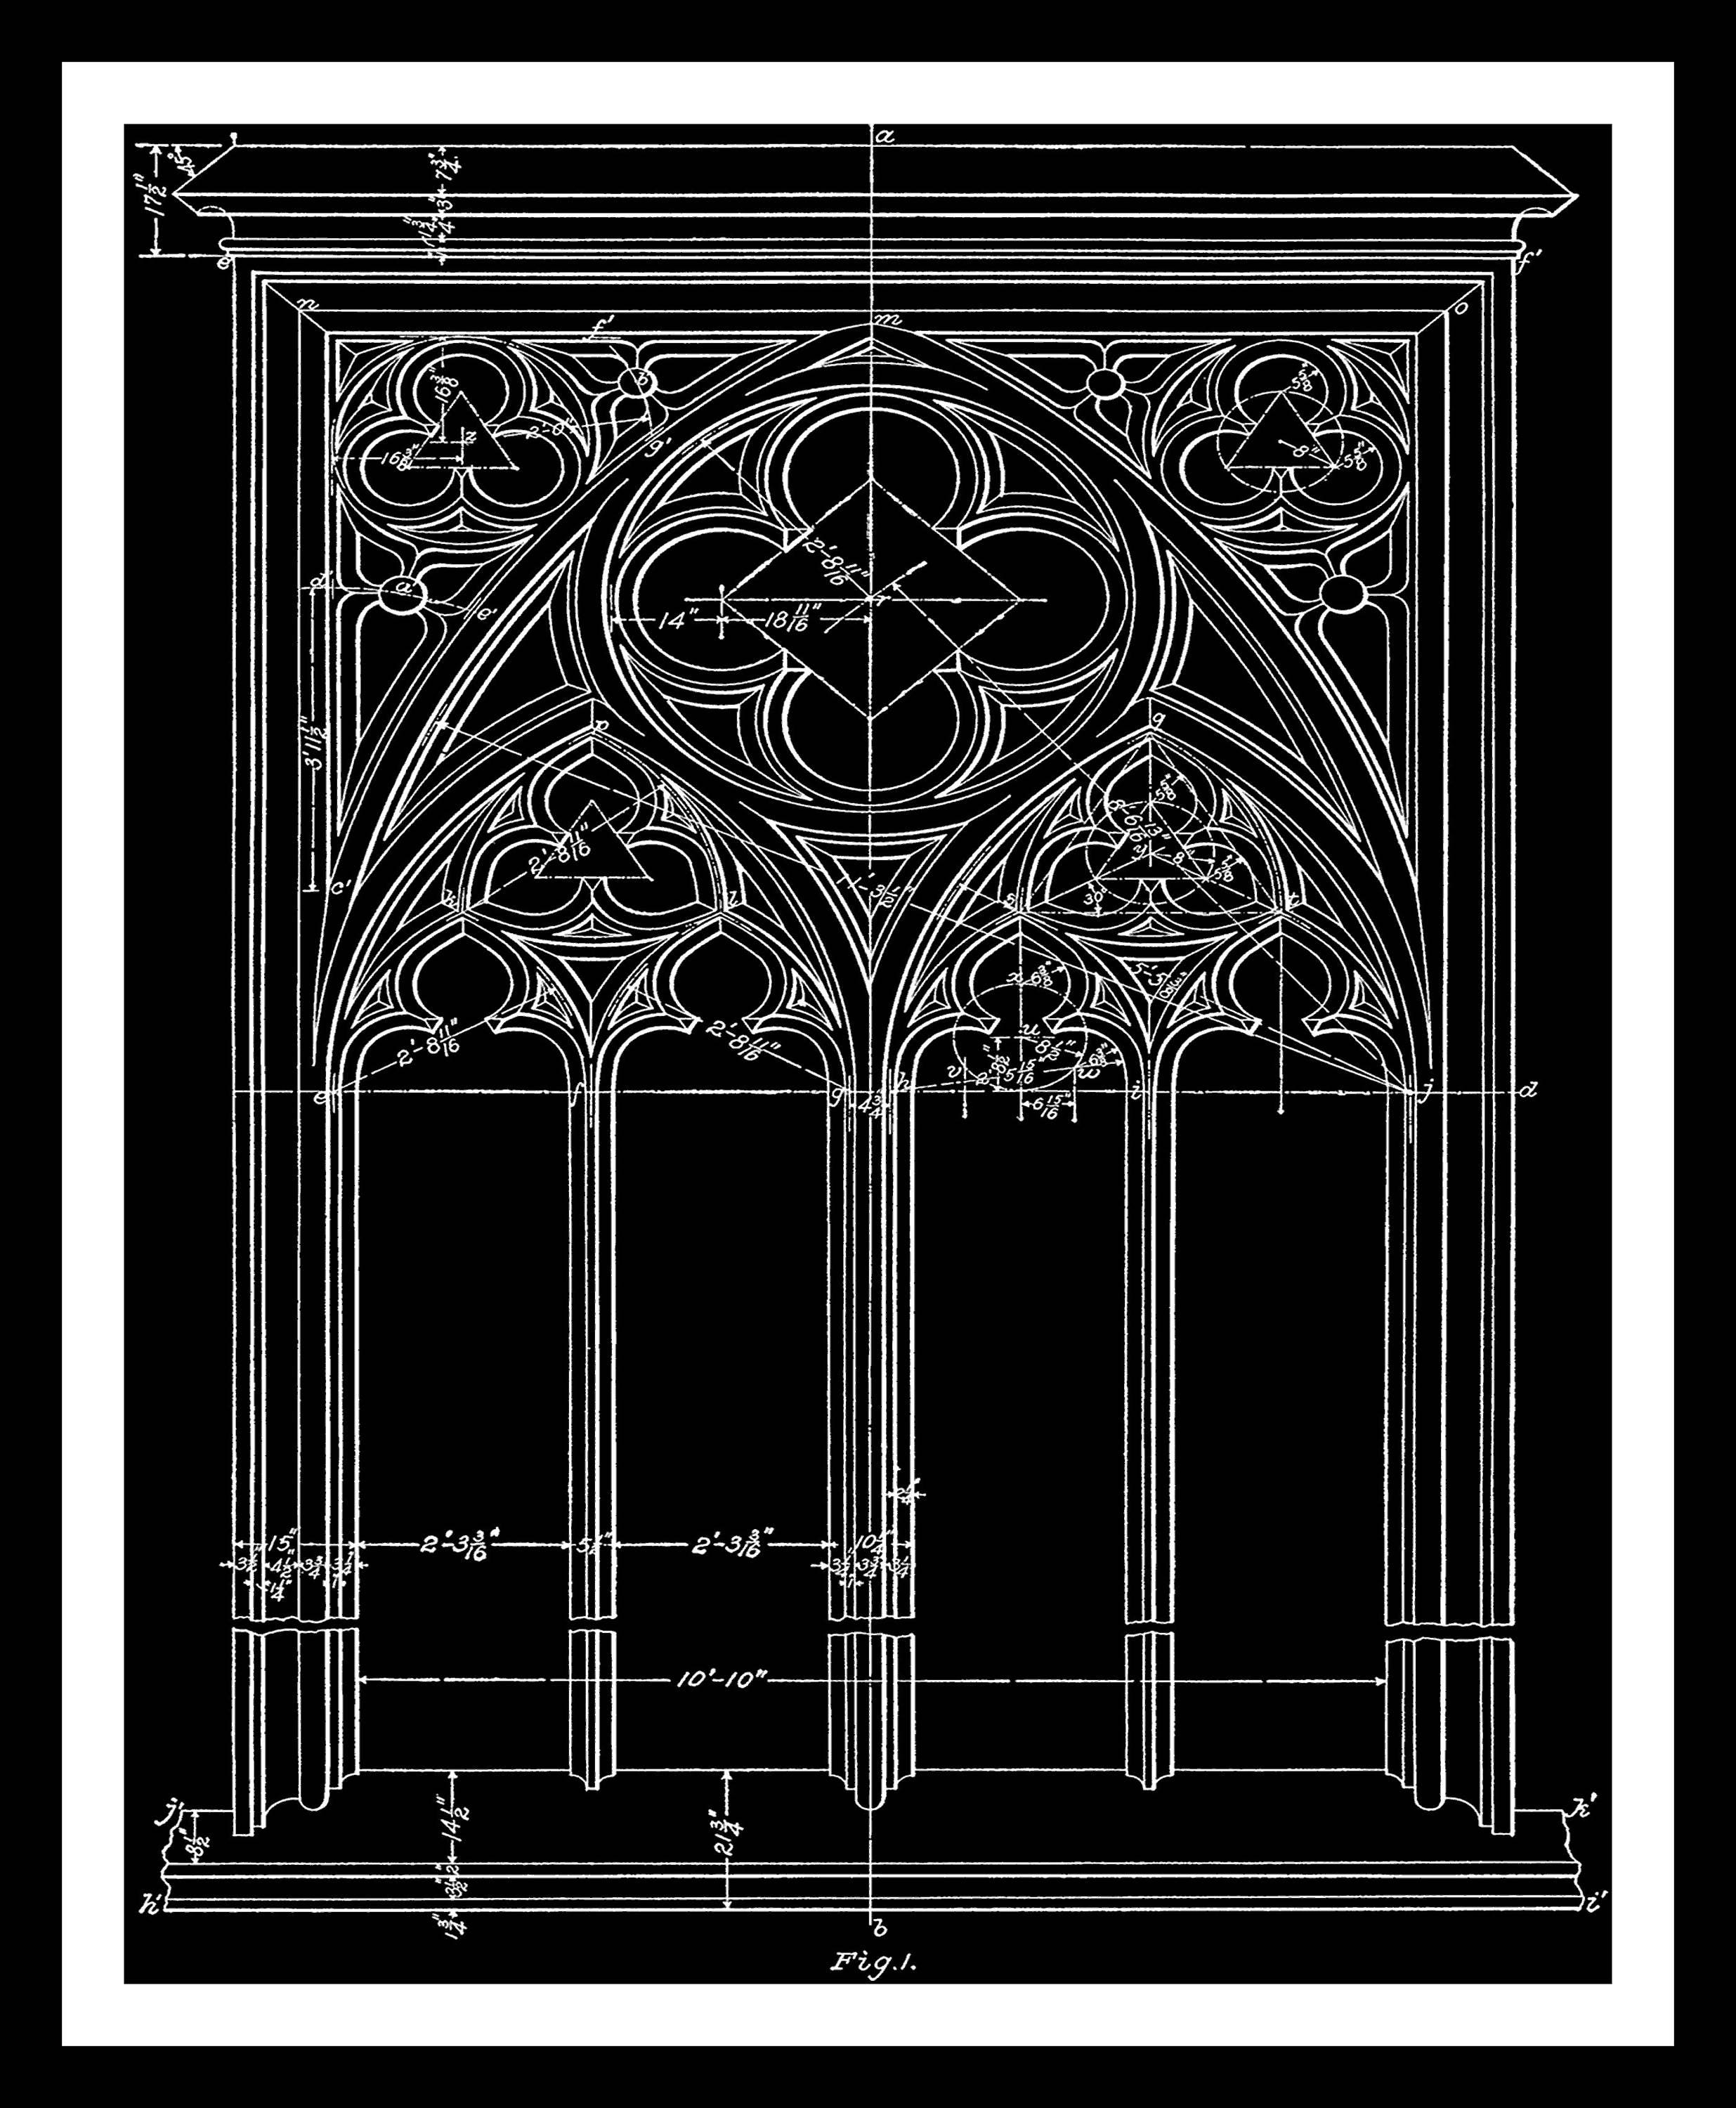 Architectural Wall Decor window, blueprint in black, architecture, gothic, architectural